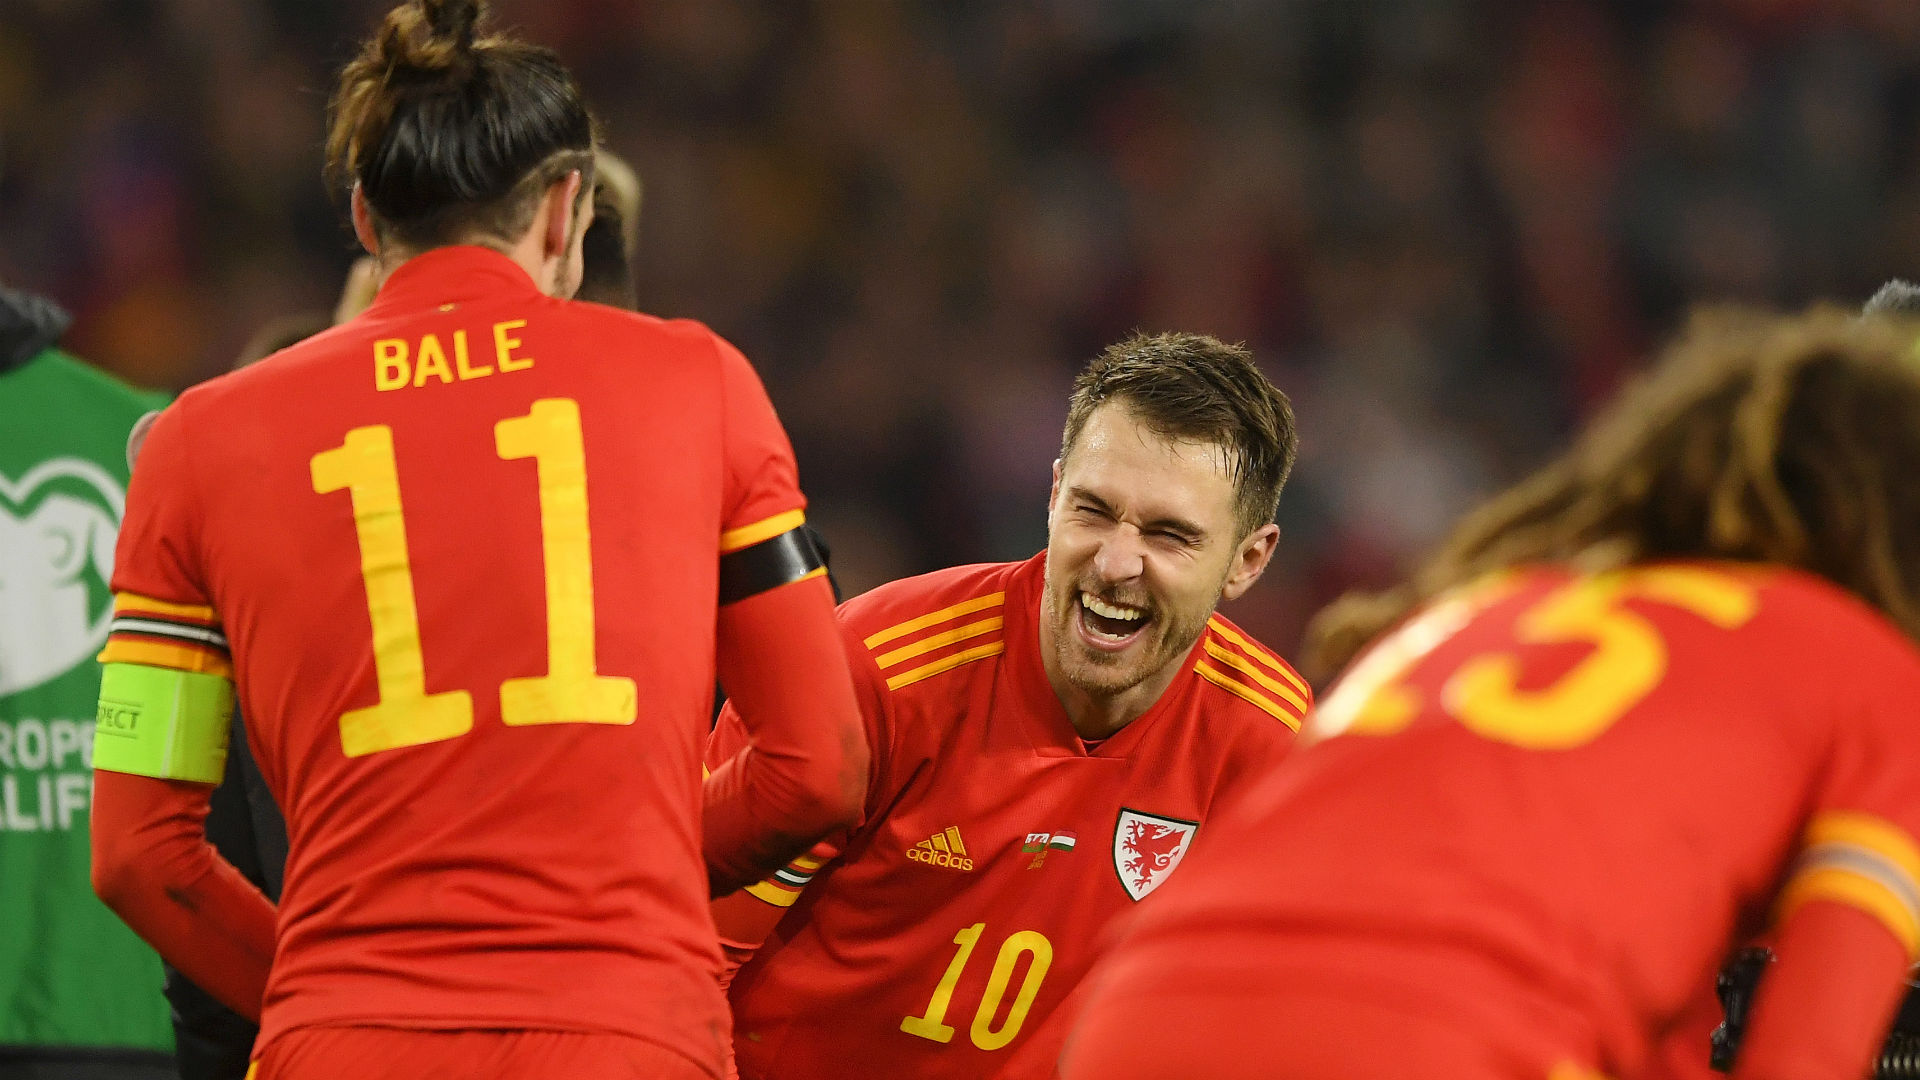 About time Ramsey contributed! Delighted Bale jokes with returning Wales hero